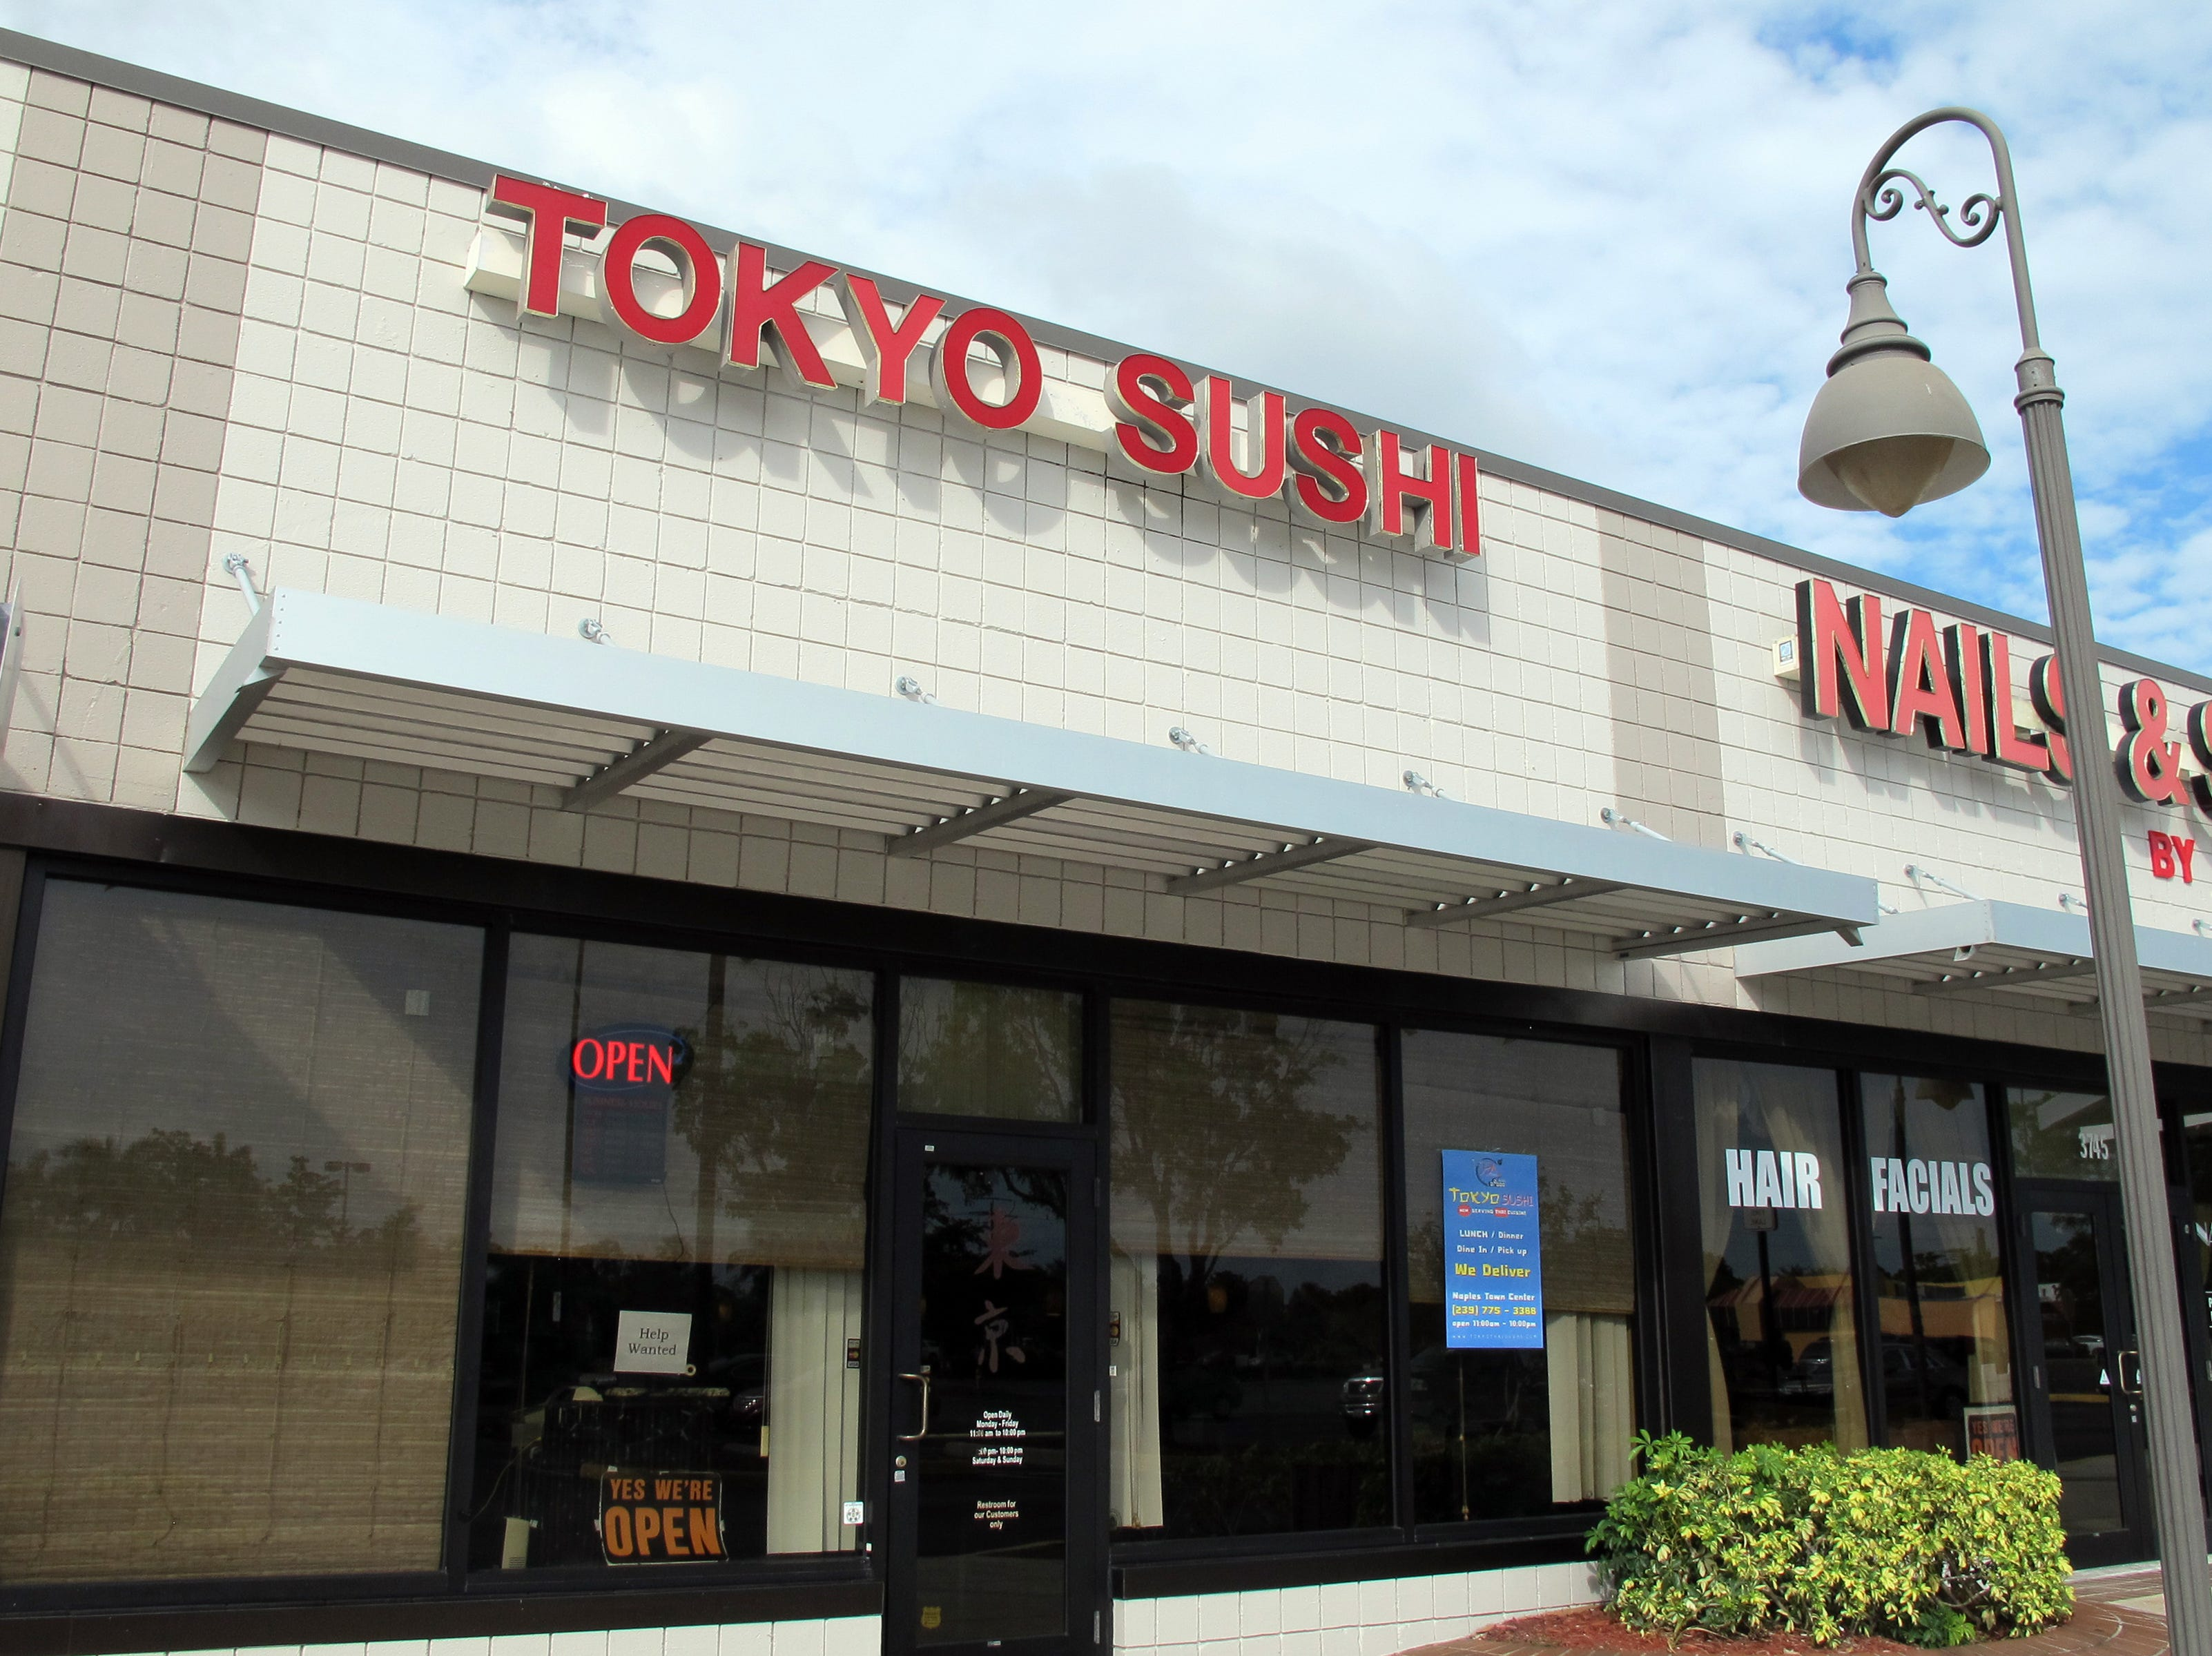 As of mid-July 2018, Tokyo Thai Sushi is the new name for this restaurant under new ownership in Naples Towne Centre on U.S. 41 East in East Naples.